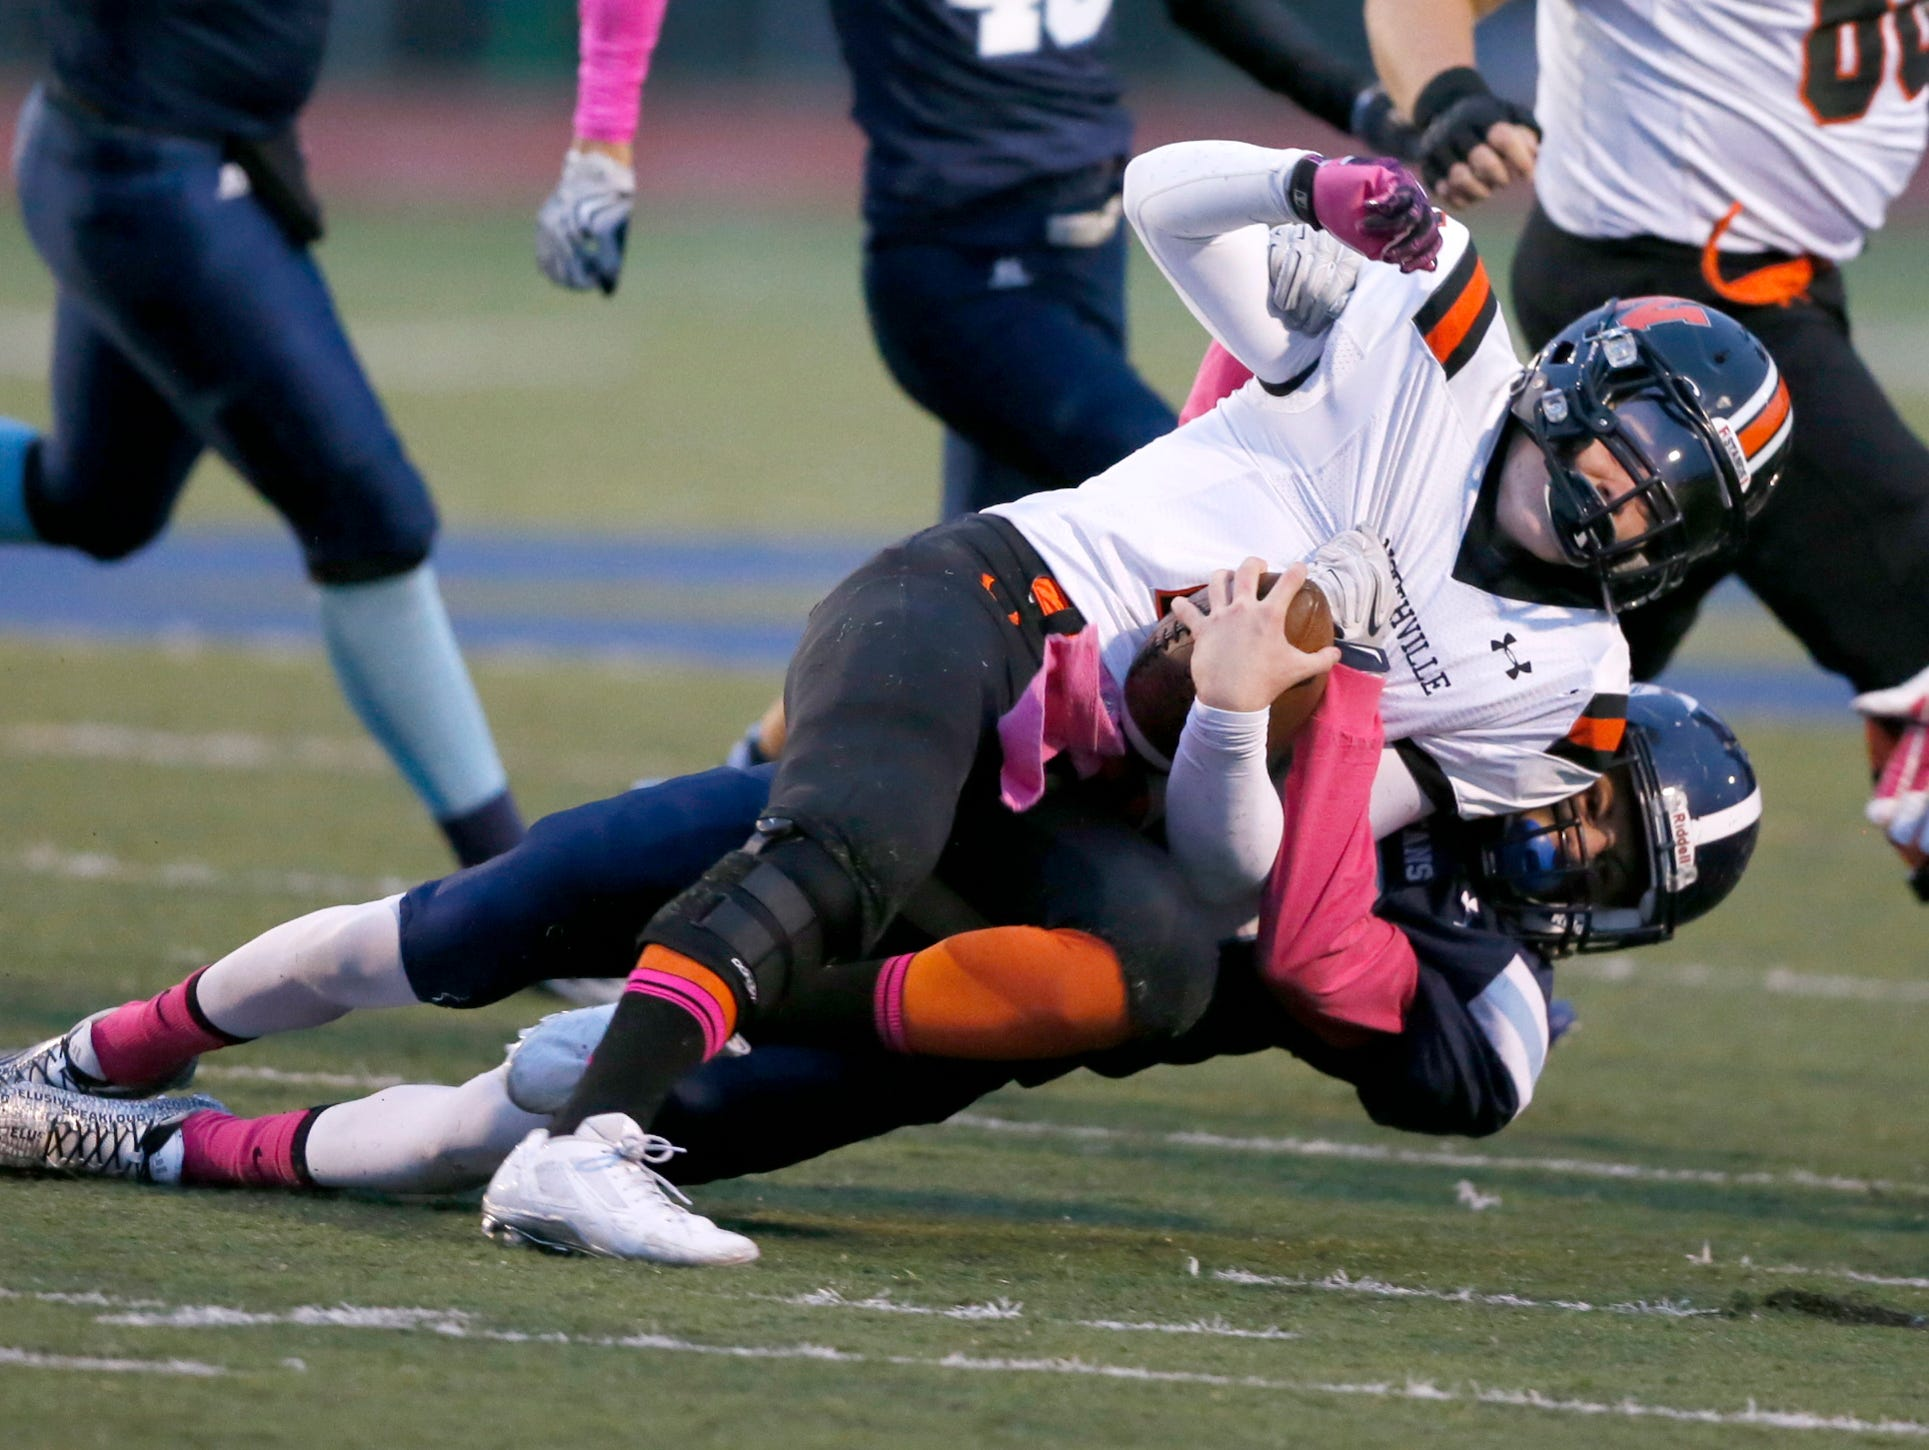 Northville's Justin Zimbo is tackled by Livonia Stevenson's Jack Balint at the end of a run Oct. 2, 2015, in Livonia.